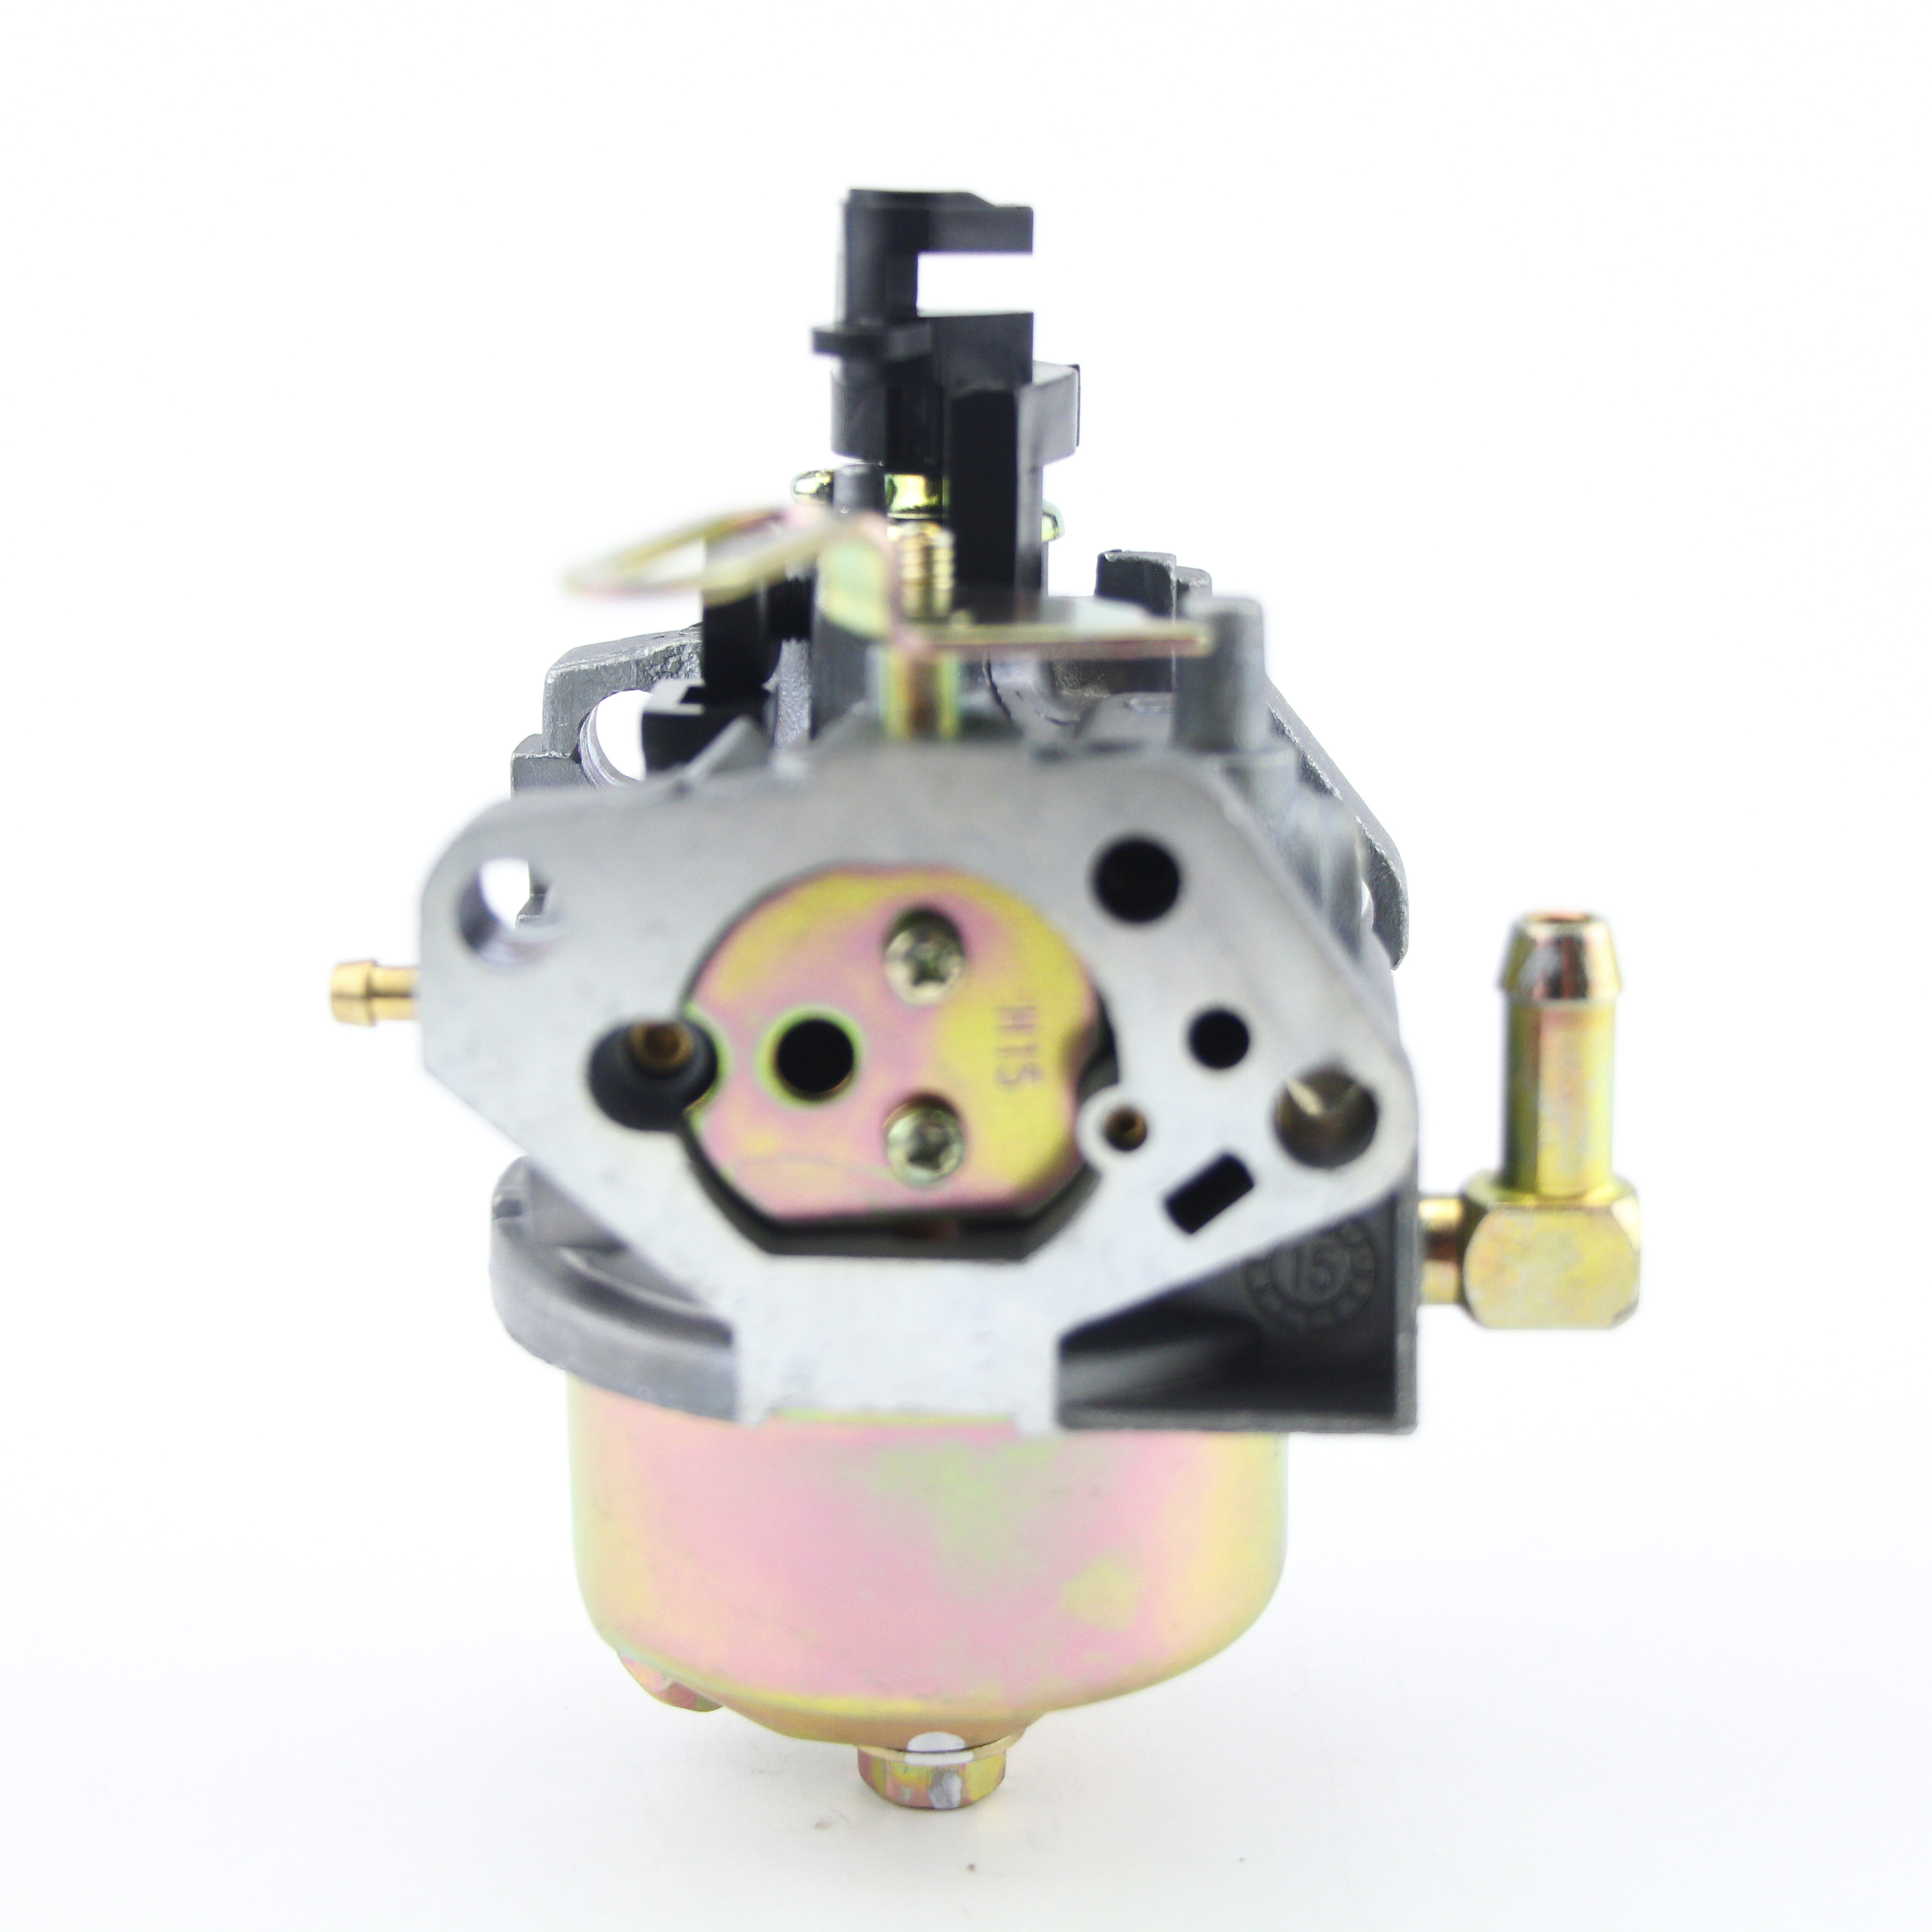 Carburetor MTD 183S 183SA For Troy Bilt Cub Cadet Craftsman Snowblowers  Snow Thrower Carb # 951-14024A, 951-11193A, 751-11193A, 751-14024A